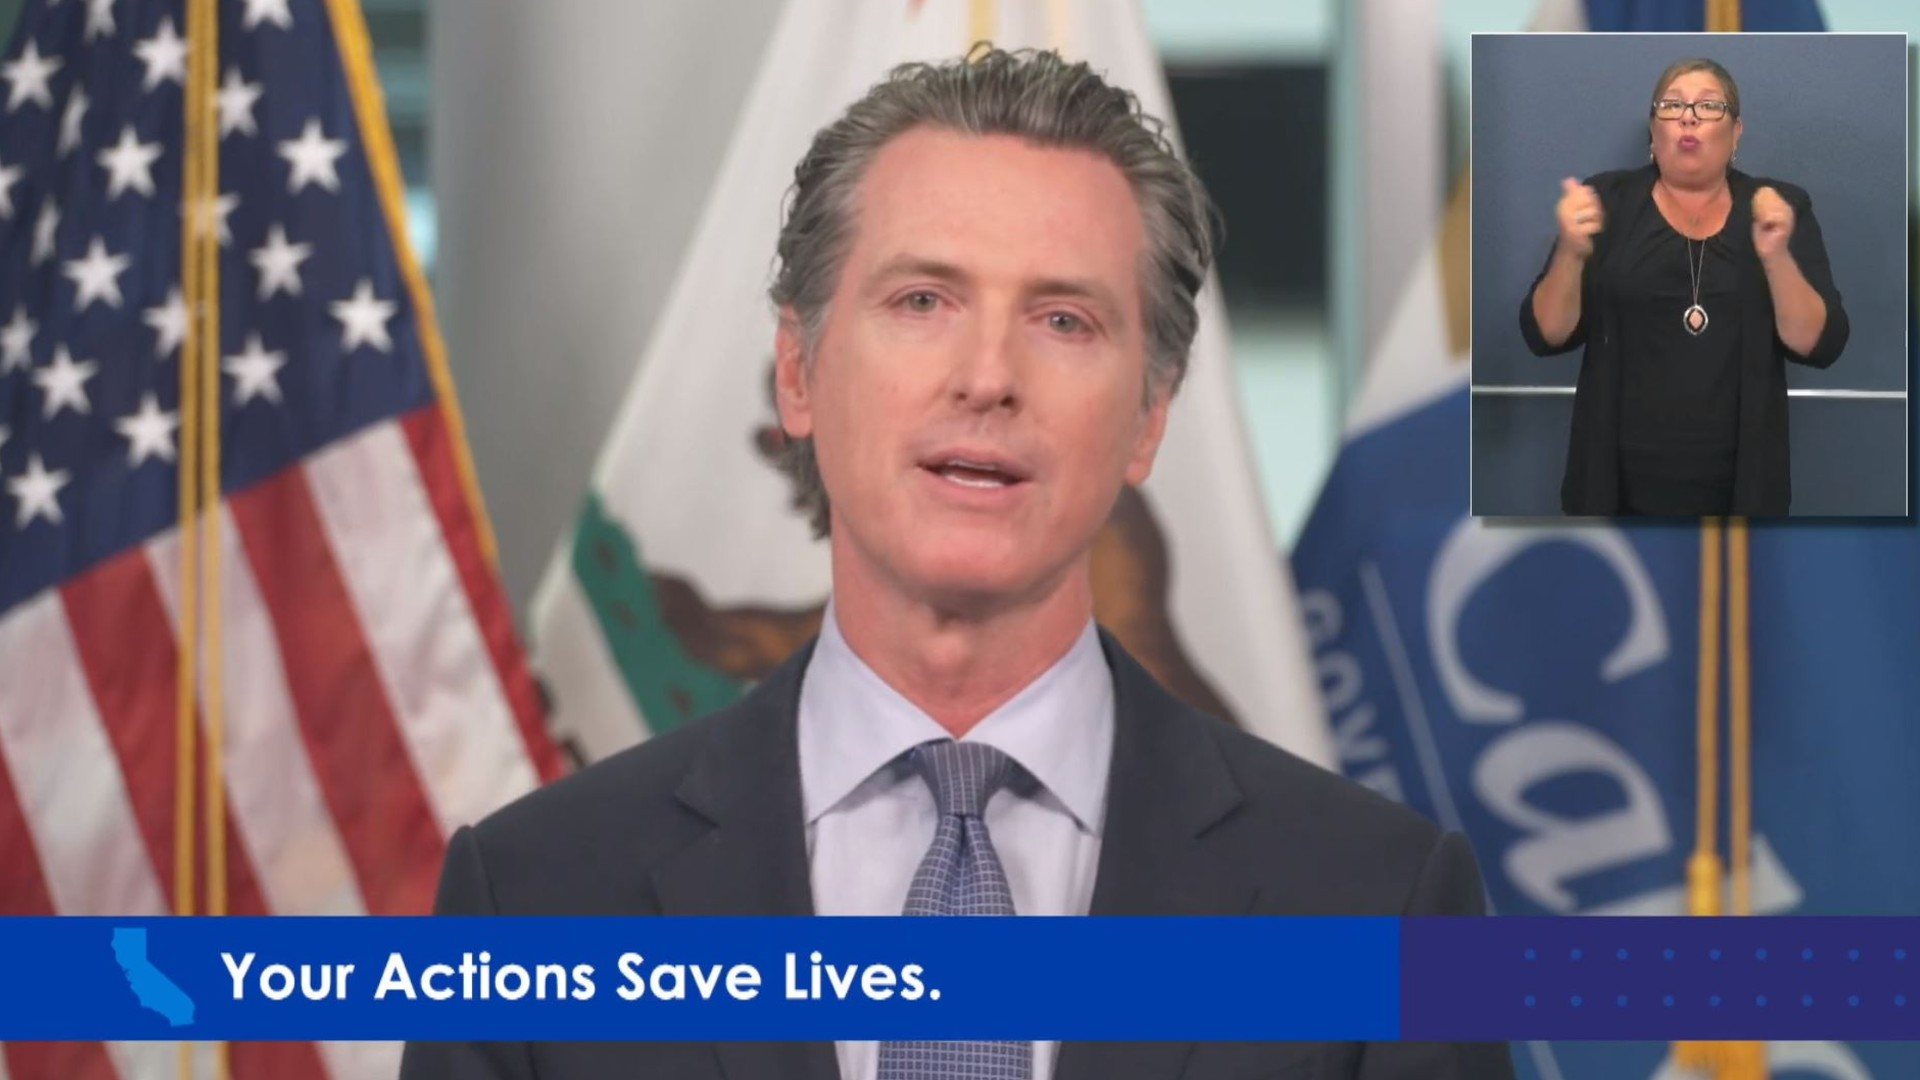 California Gov. Gavin Newsom discusses the May 25, 2020, death of George Floyd in a confrontation with police in Minneapolis during a news conference on May 29, 2020.